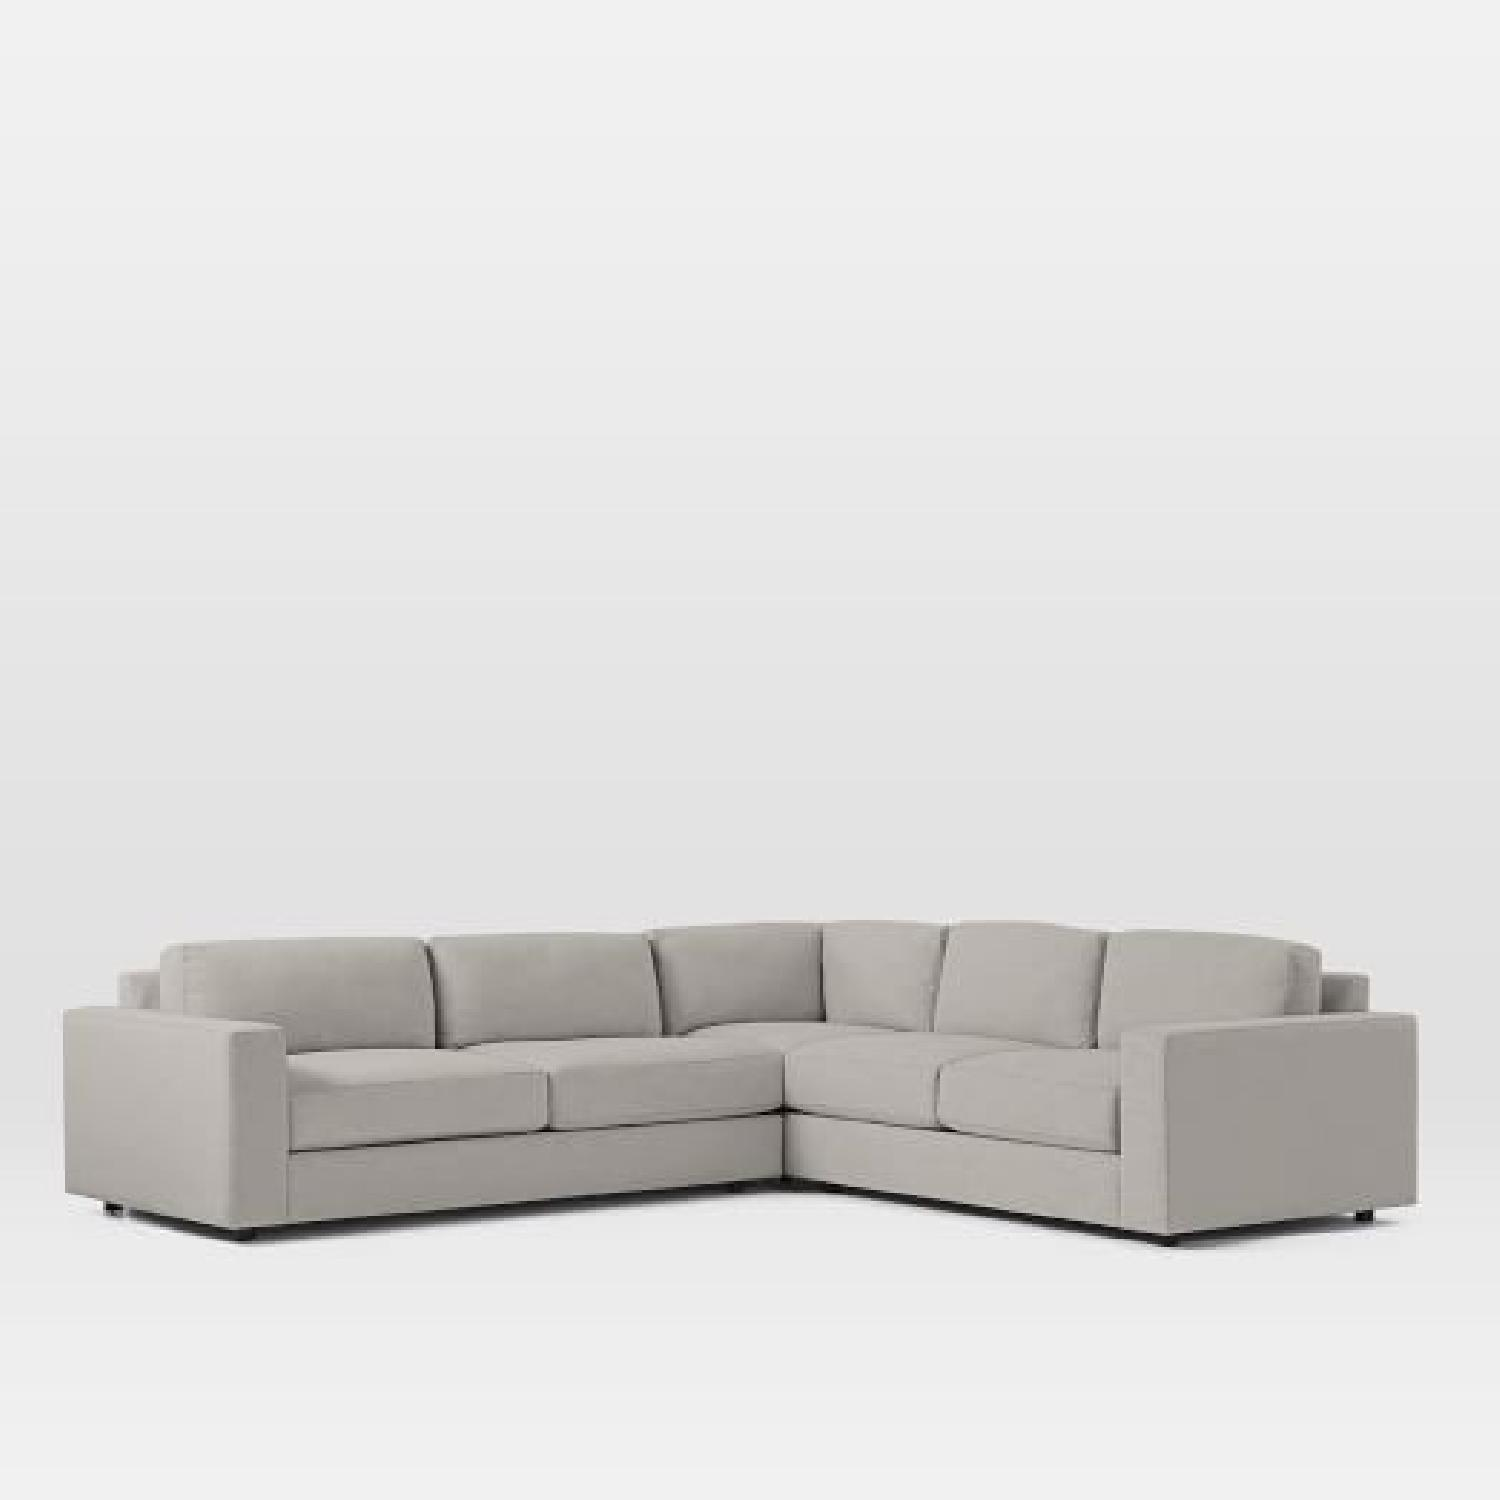 100 Furniture West Elm Henry Sectional Gripping Concept